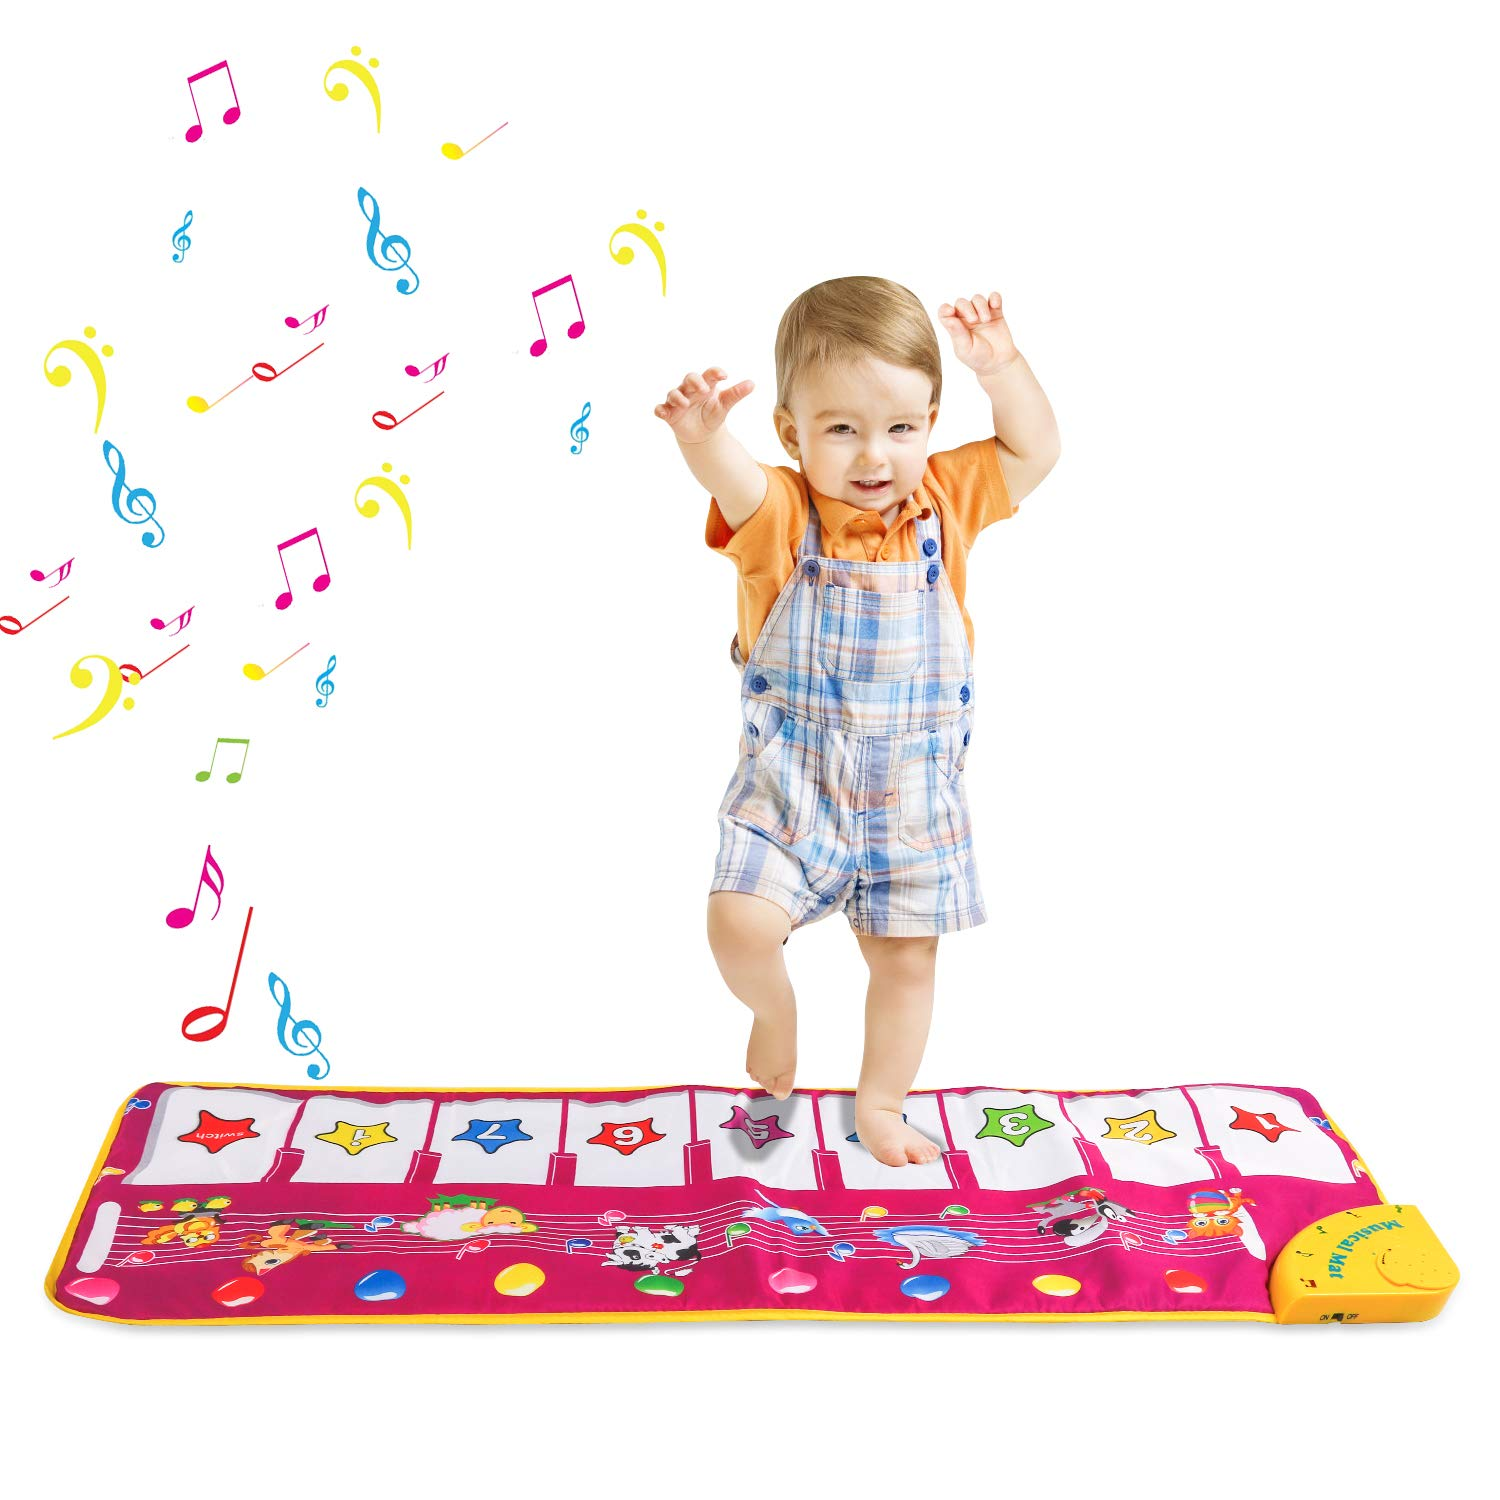 Musical Toys,Piano Mat Zmoon Musical Carpet Baby Toddler Activity Gym Play Mats , Baby Early Education Coolplay Music Singing Piano Keyboard Blanket Touch Play Safety Learn Singing funny Toy for Kids Gift (Purple)